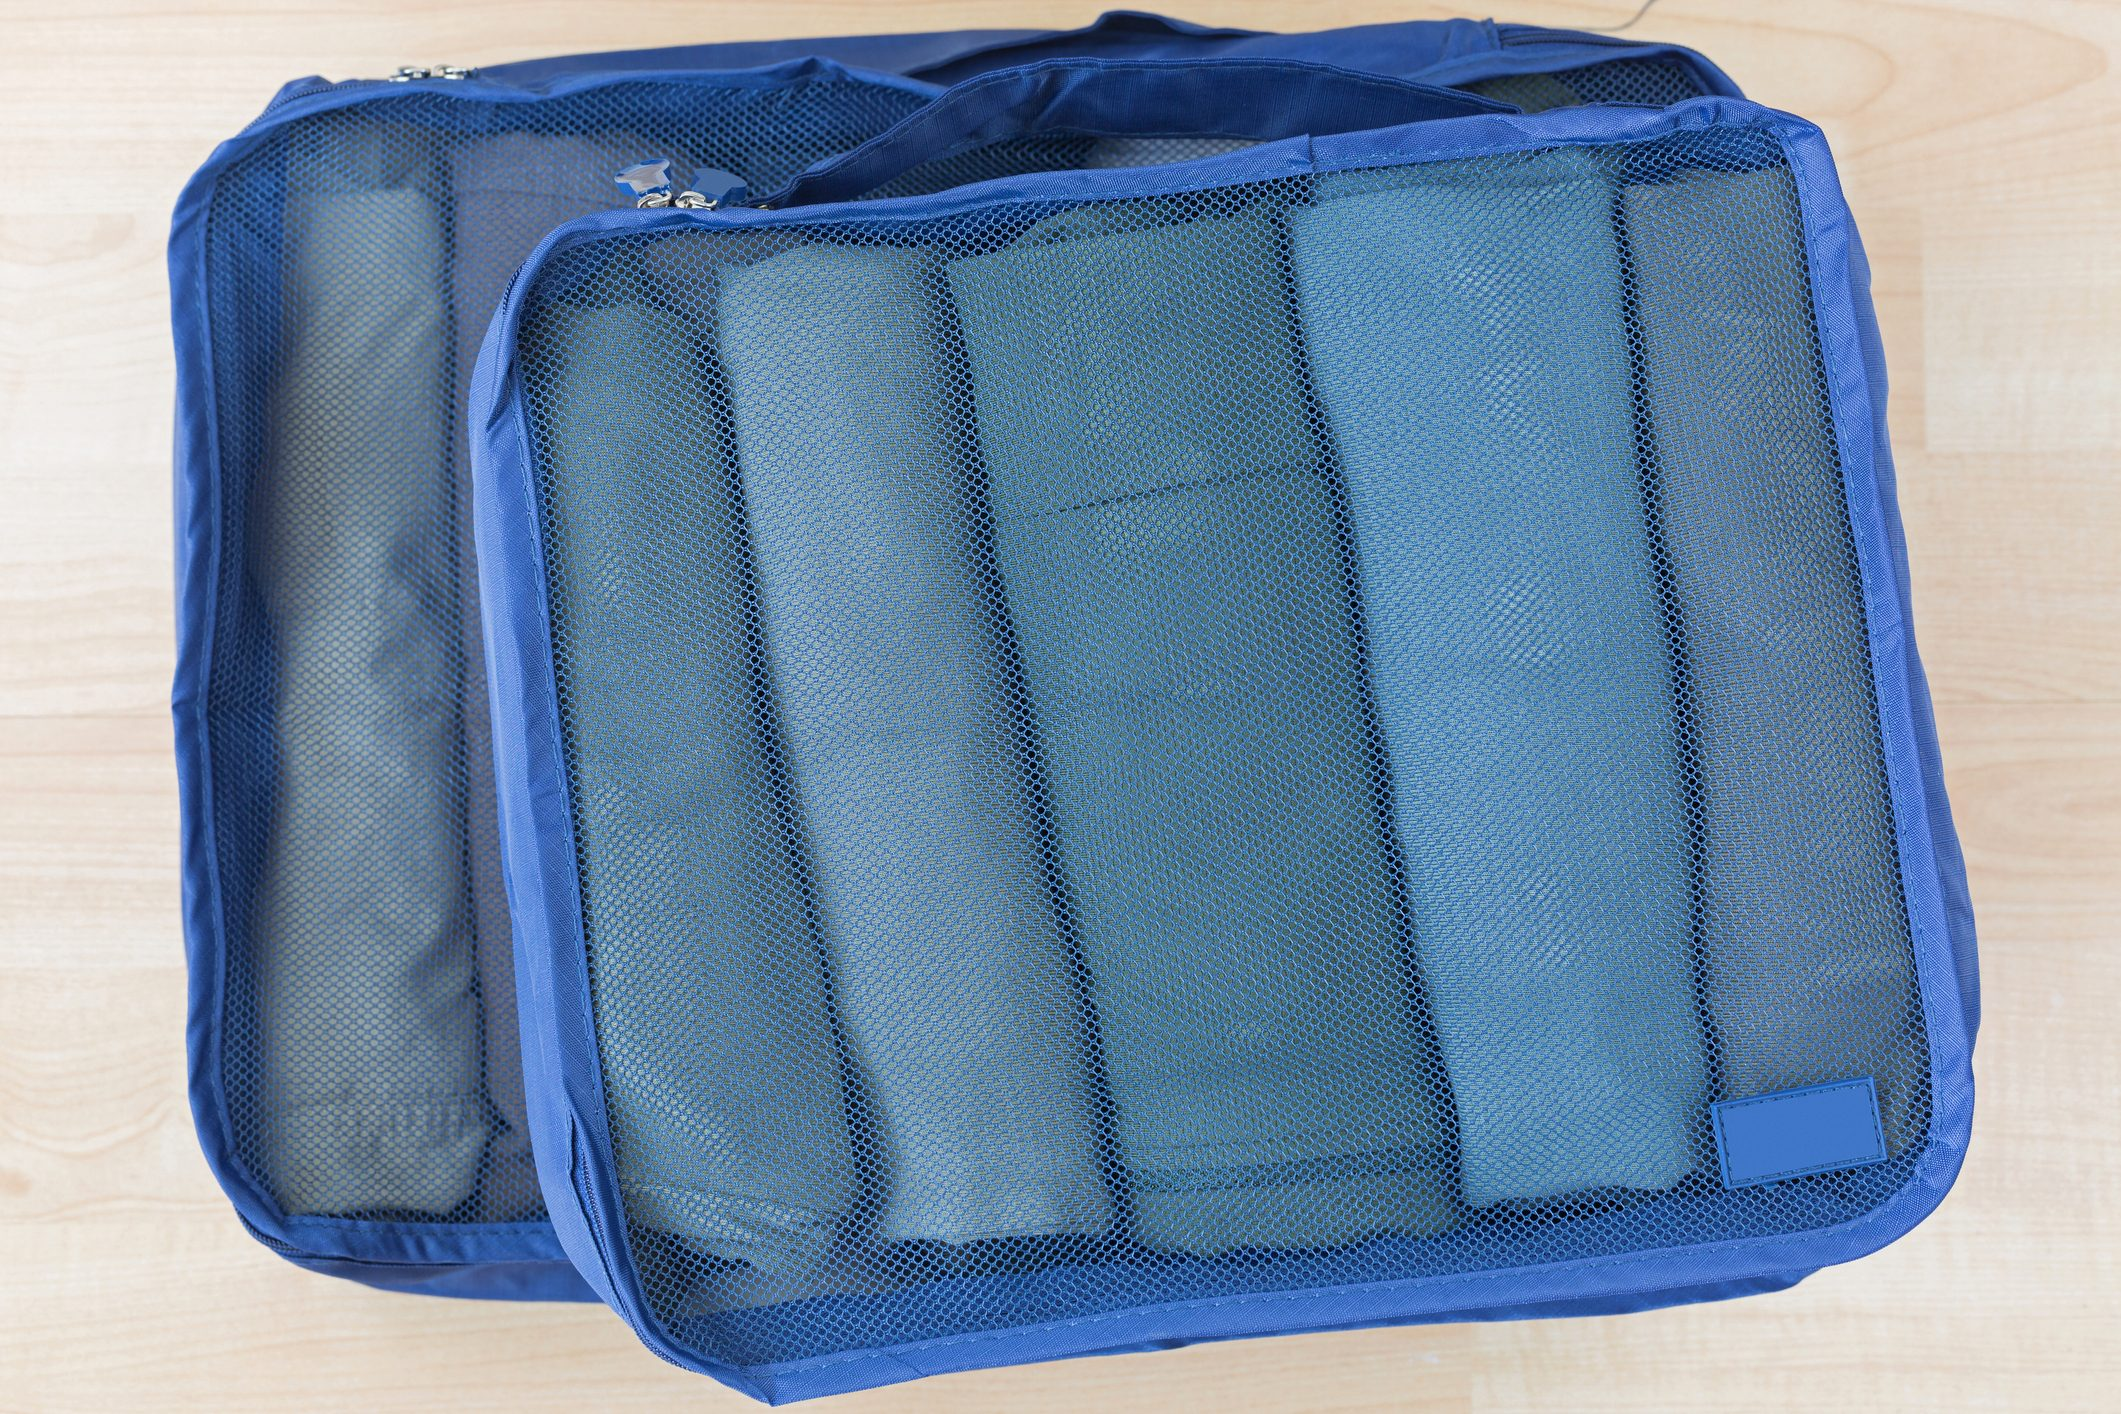 Cube Meshed Bags With Rolled Clothes. Set Of Travel Organizer To Help Packing Well Organized